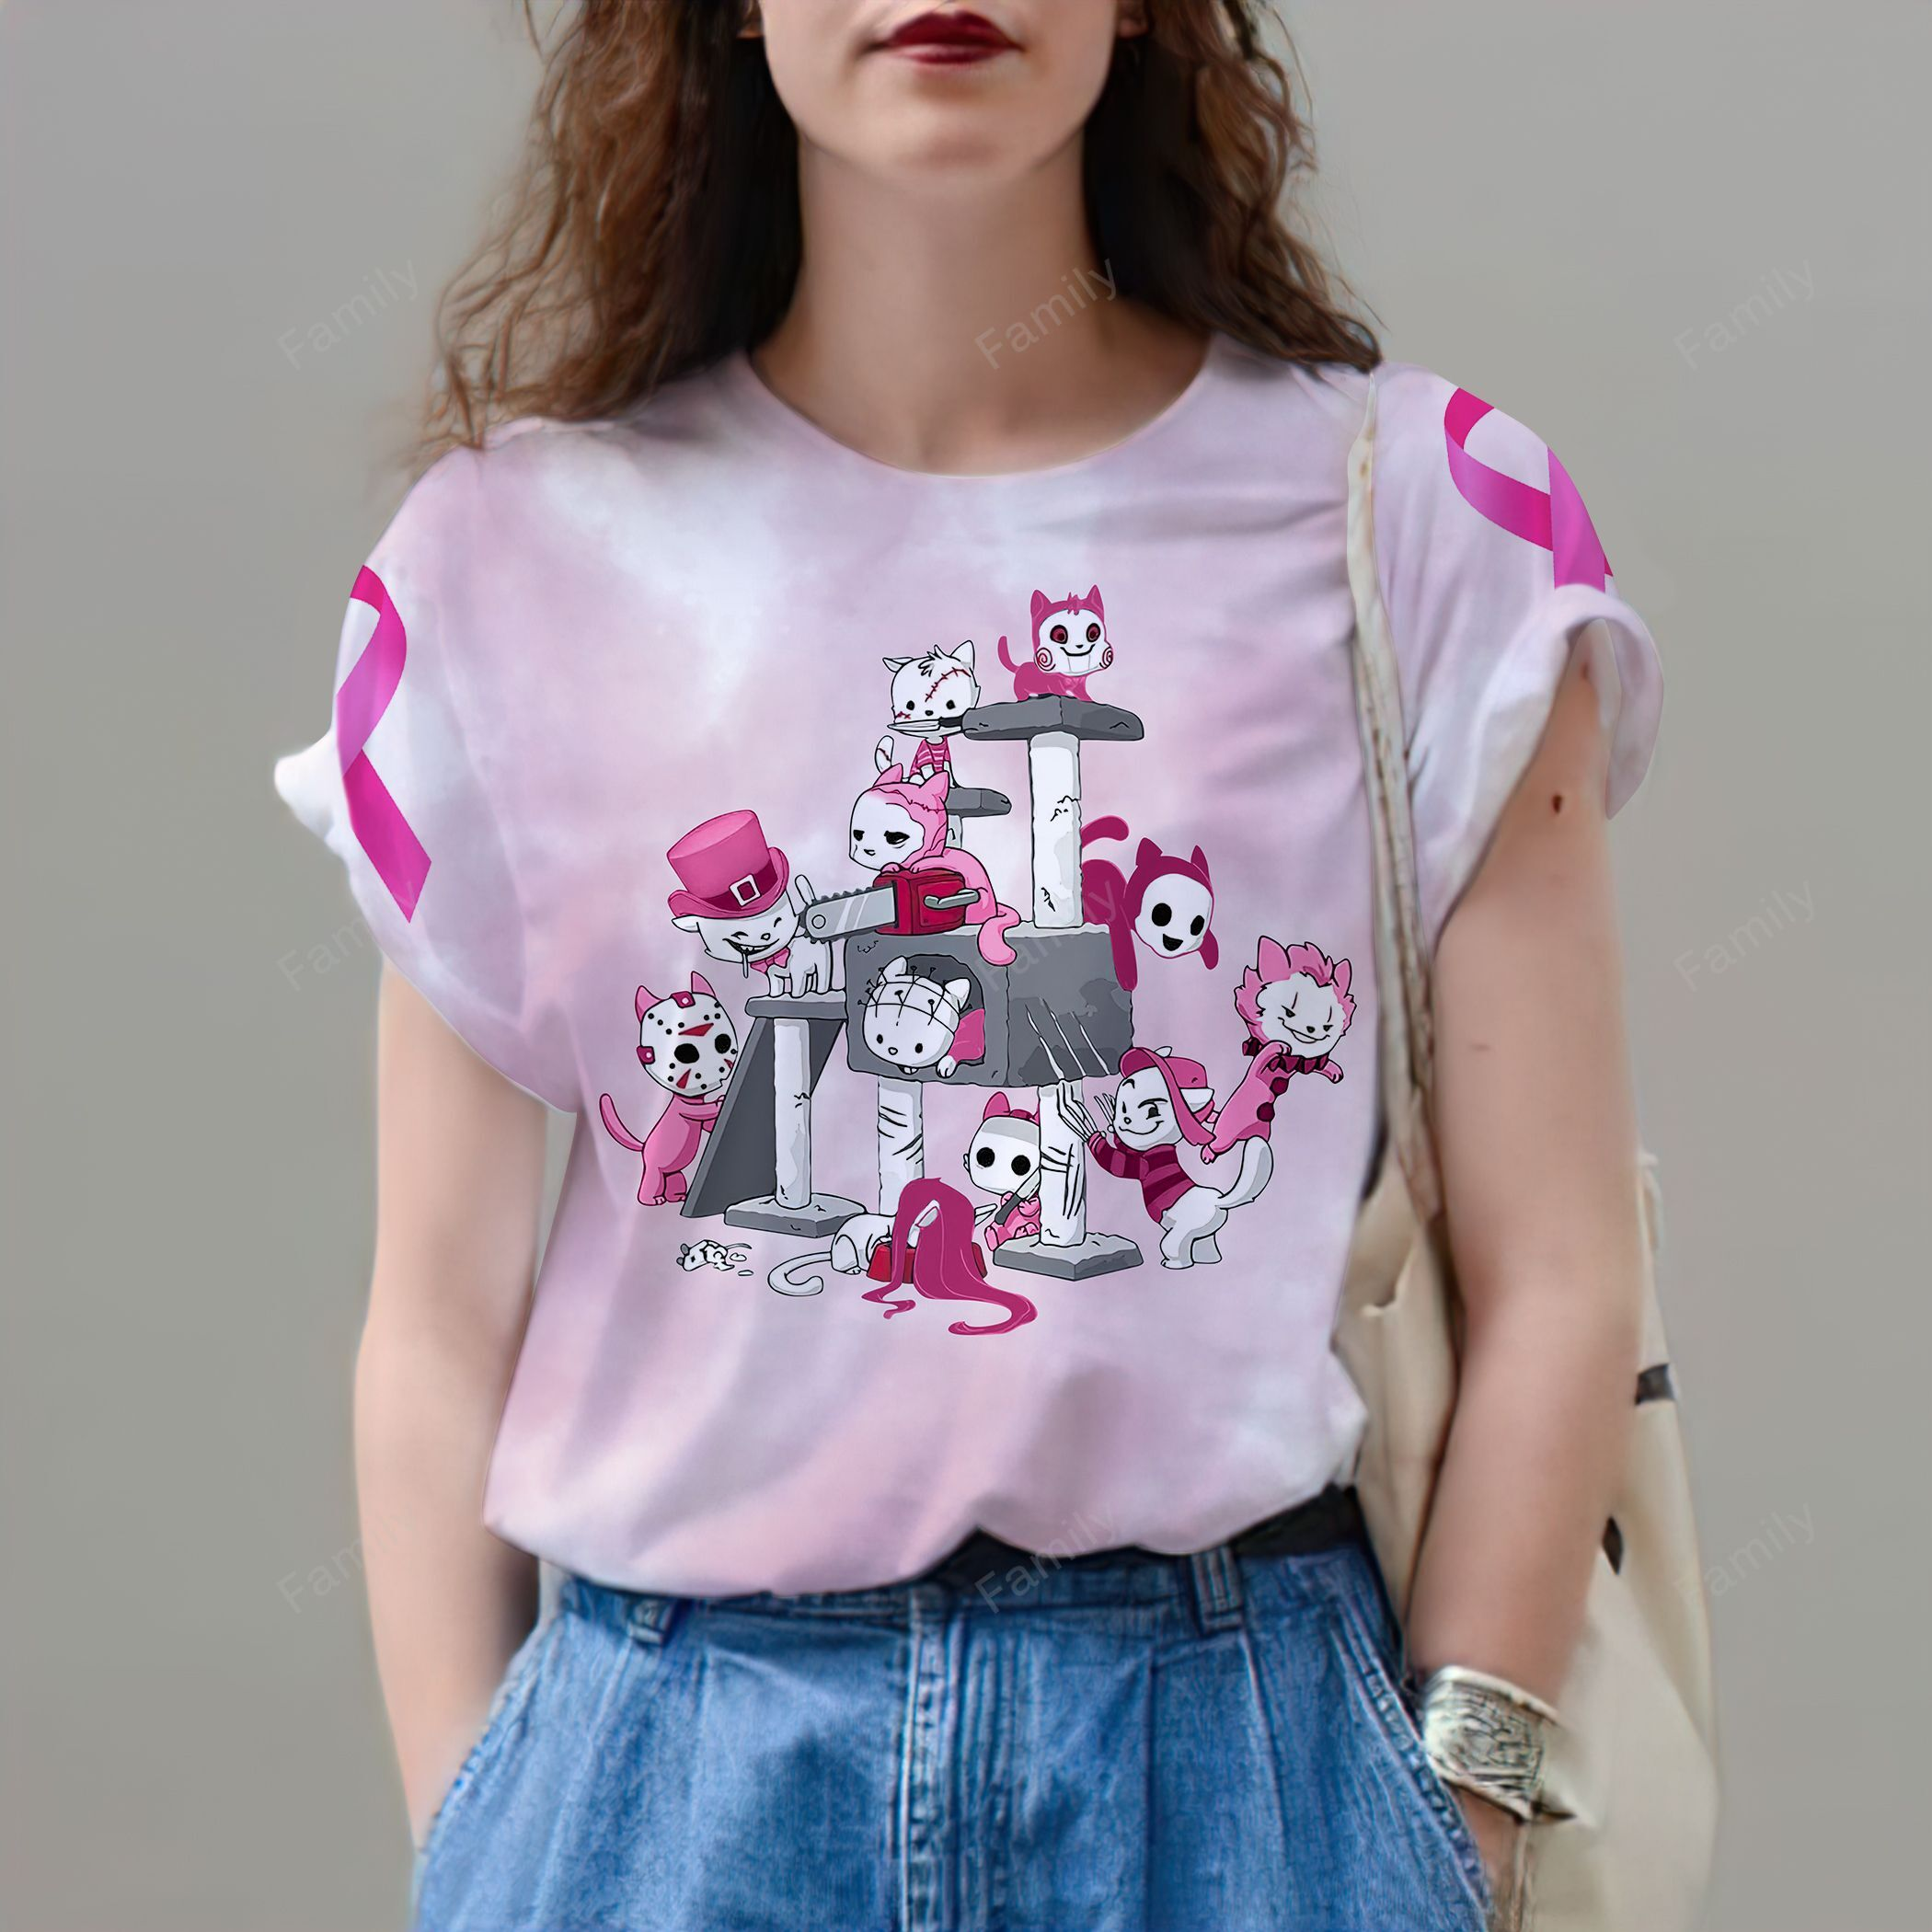 In October We Wear Pink Breast Cancer Awareness Cat Lovers 3D shirt